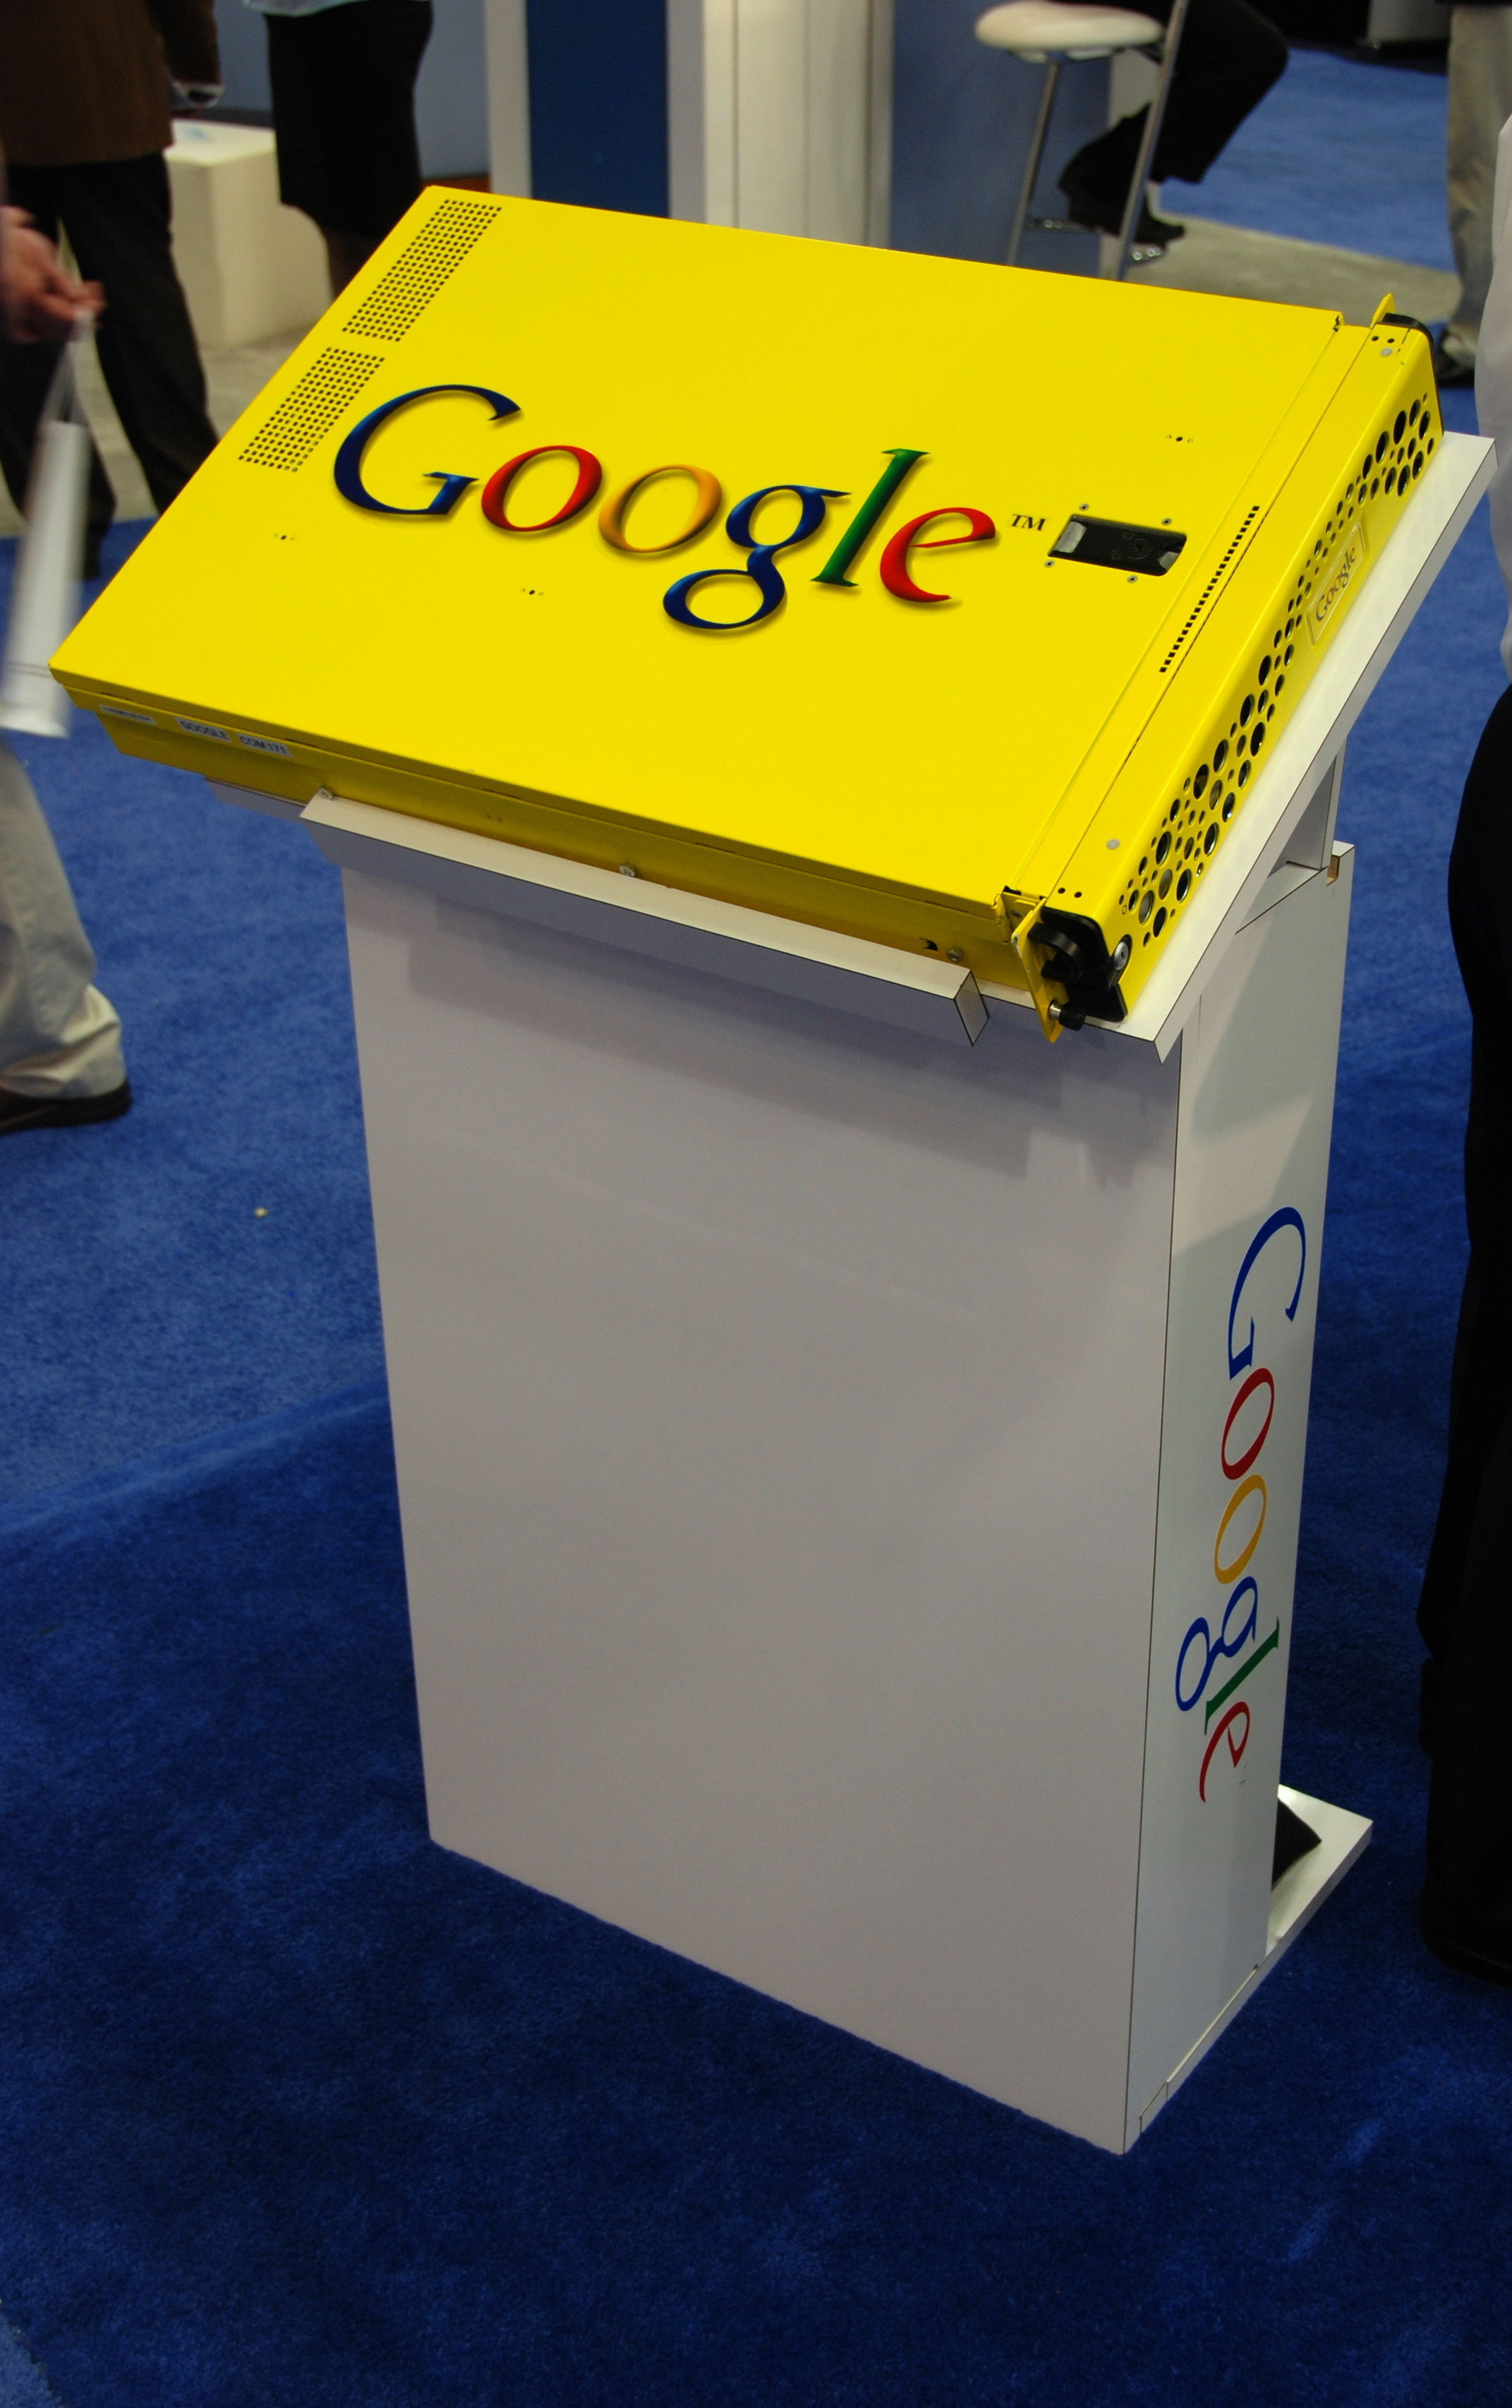 Google Search Appliance - Wikipedia